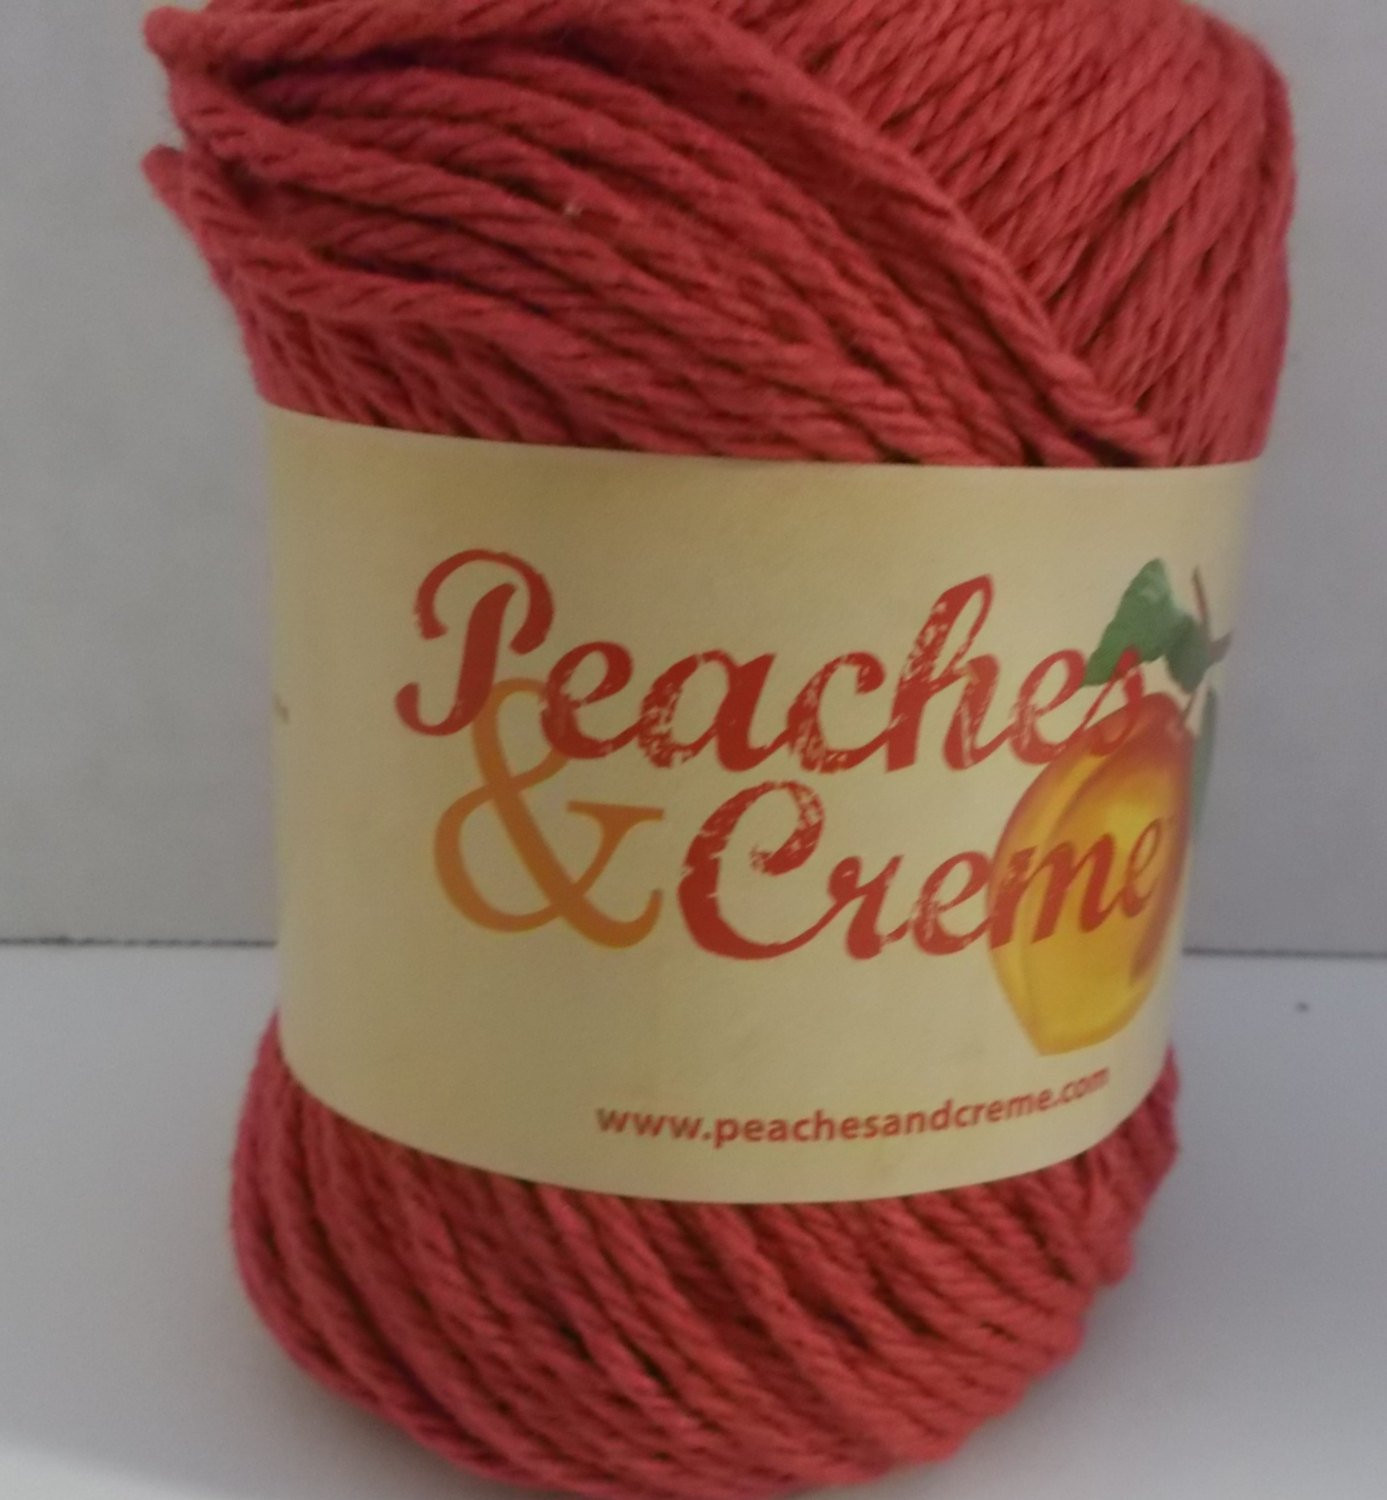 Peaches and Cream Yarn Elegant Peaches & Creme Cotton Yarn Colour Rouge Red 4 Medium Of Beautiful 43 Pics Peaches and Cream Yarn